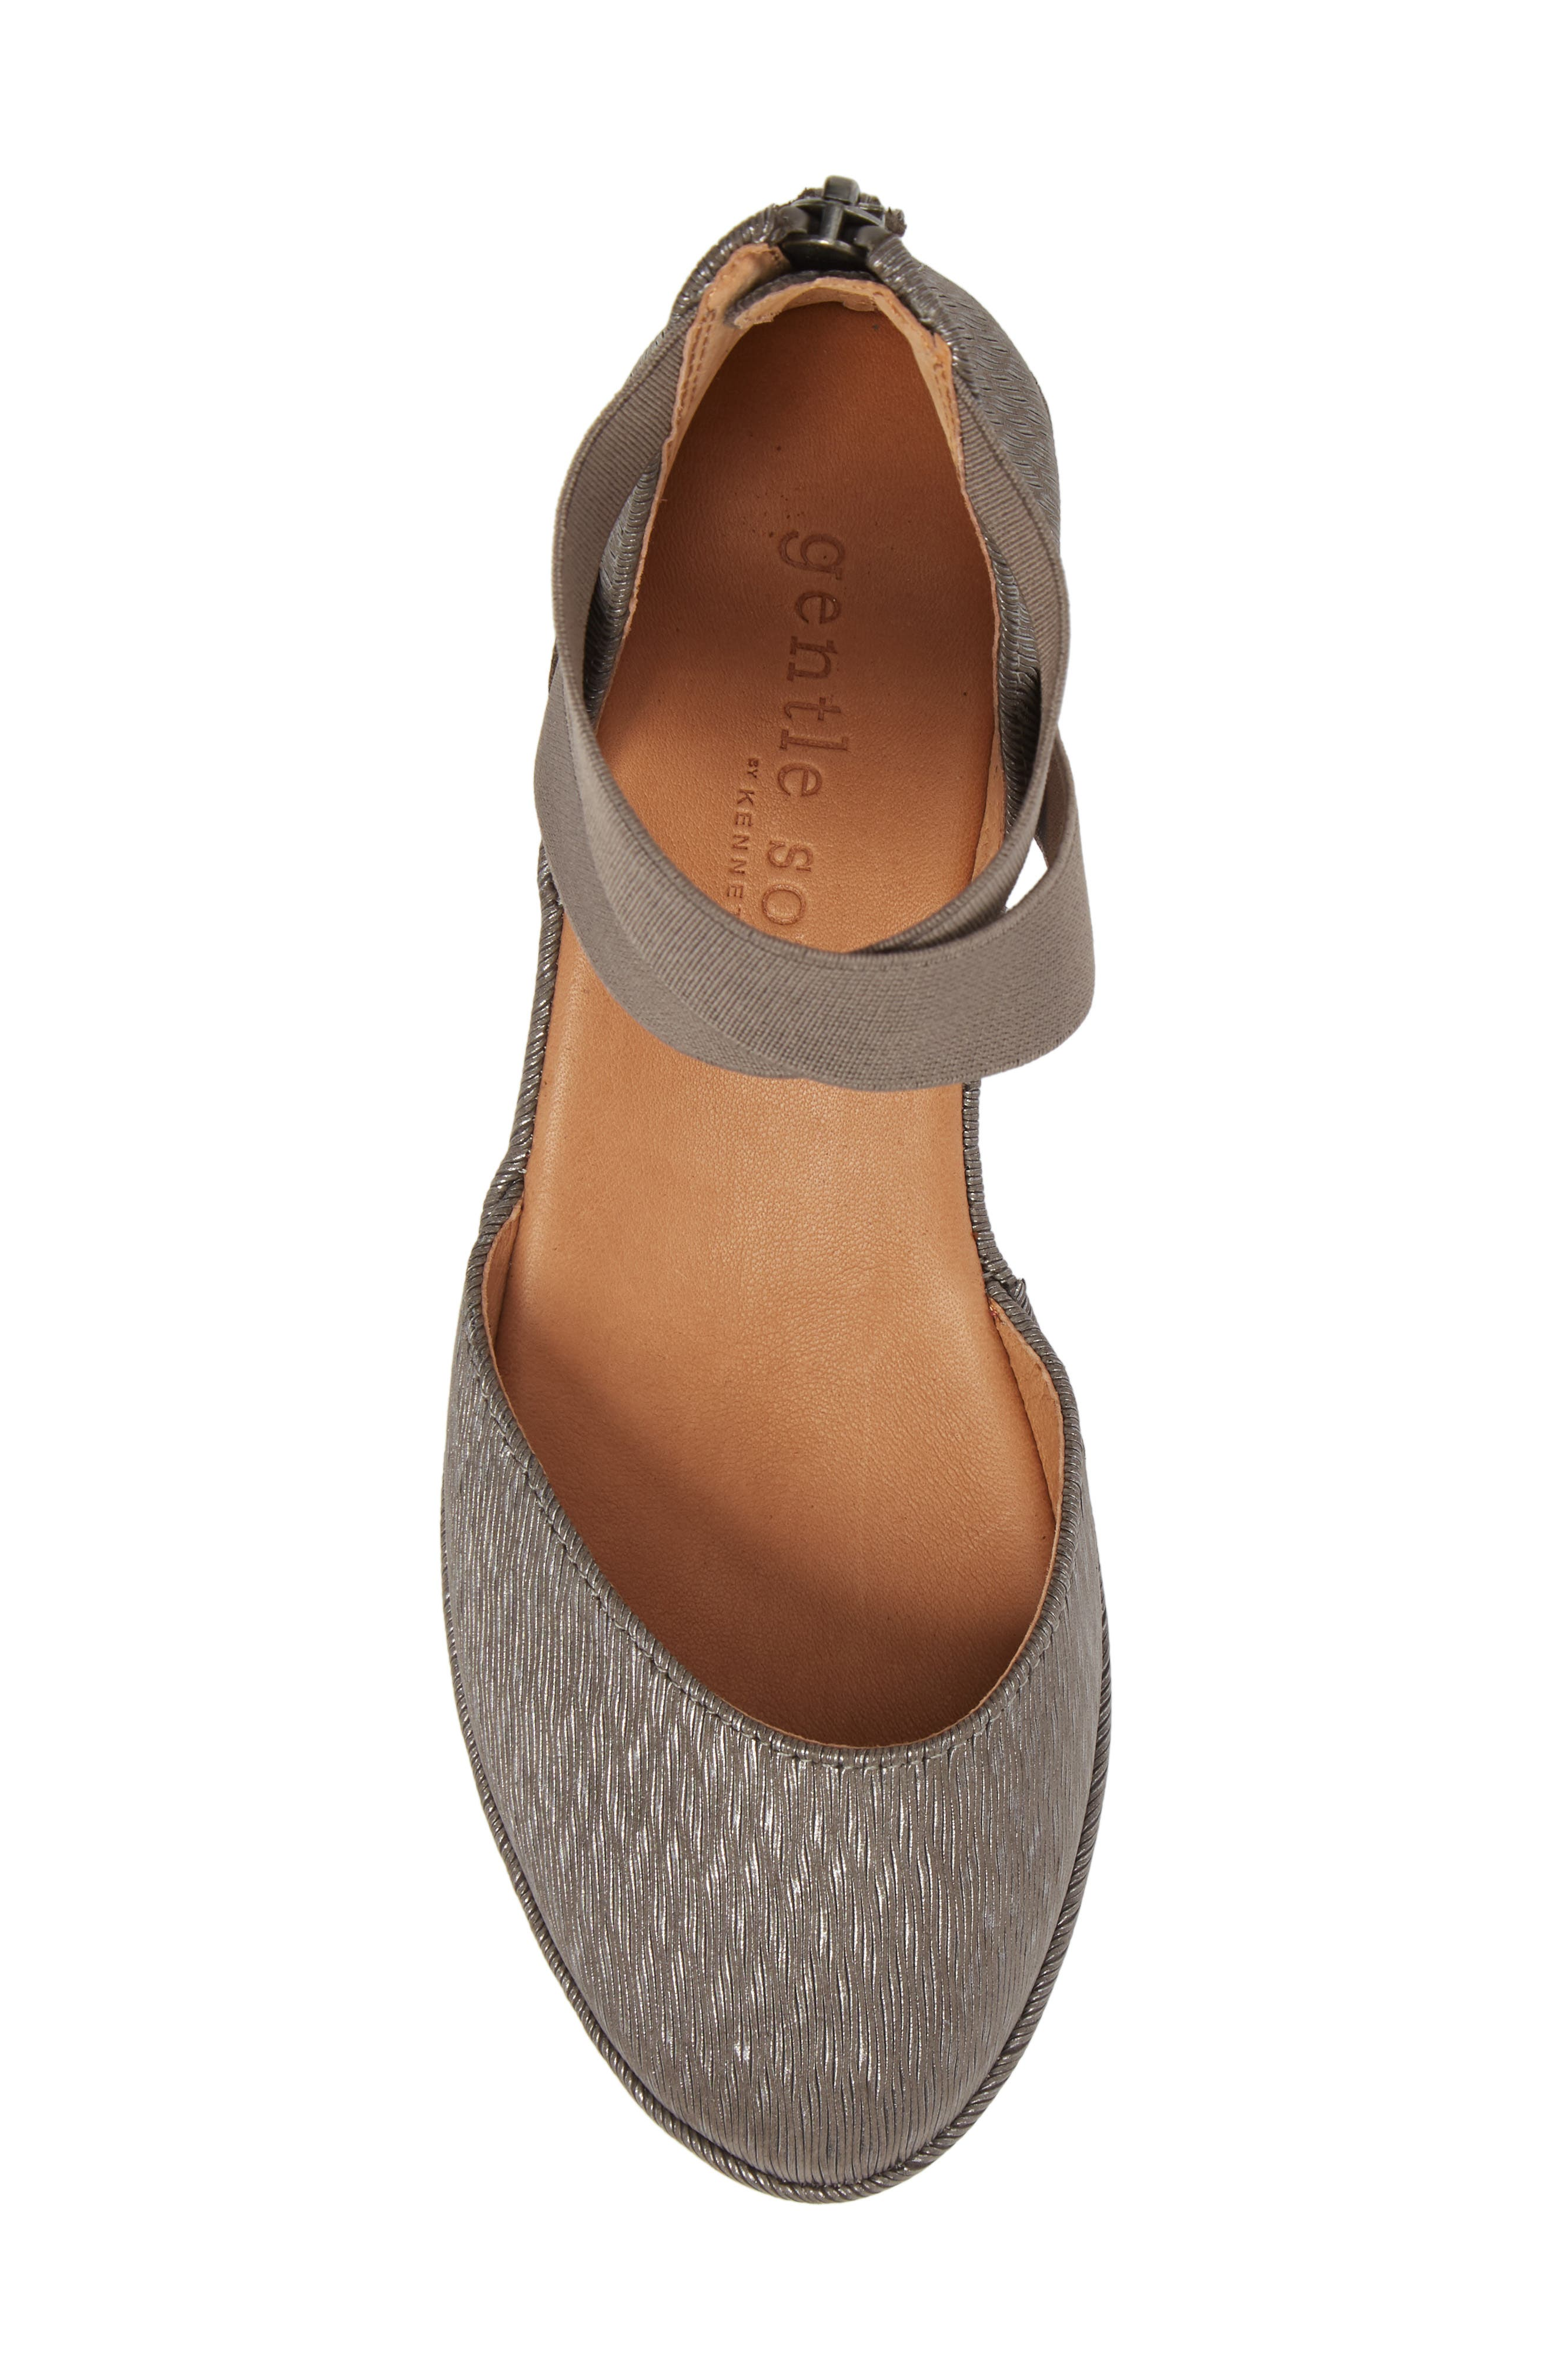 by Kenneth Cole 'Noa' Elastic Strap d'Orsay Sandal,                             Alternate thumbnail 5, color,                             Ash Embossed Leather